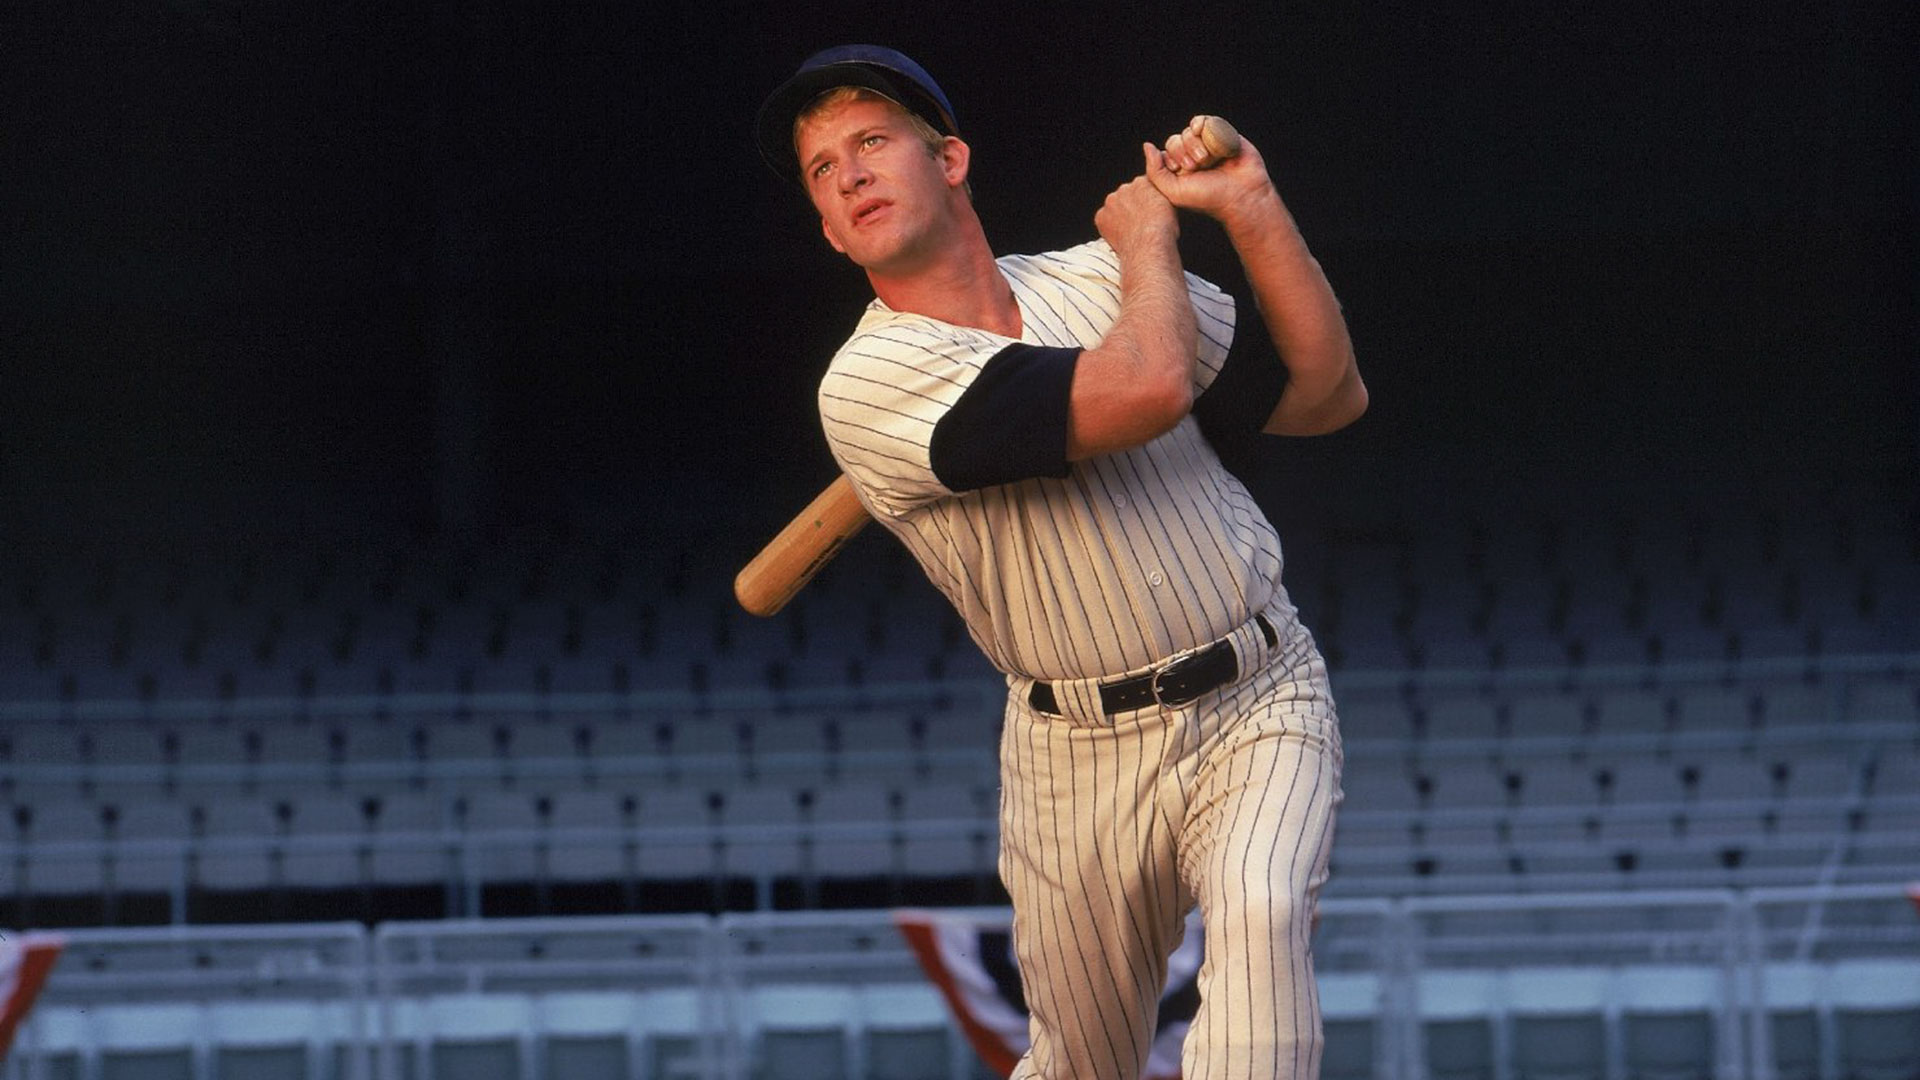 the 15 best baseball movies of all time ranked sporting